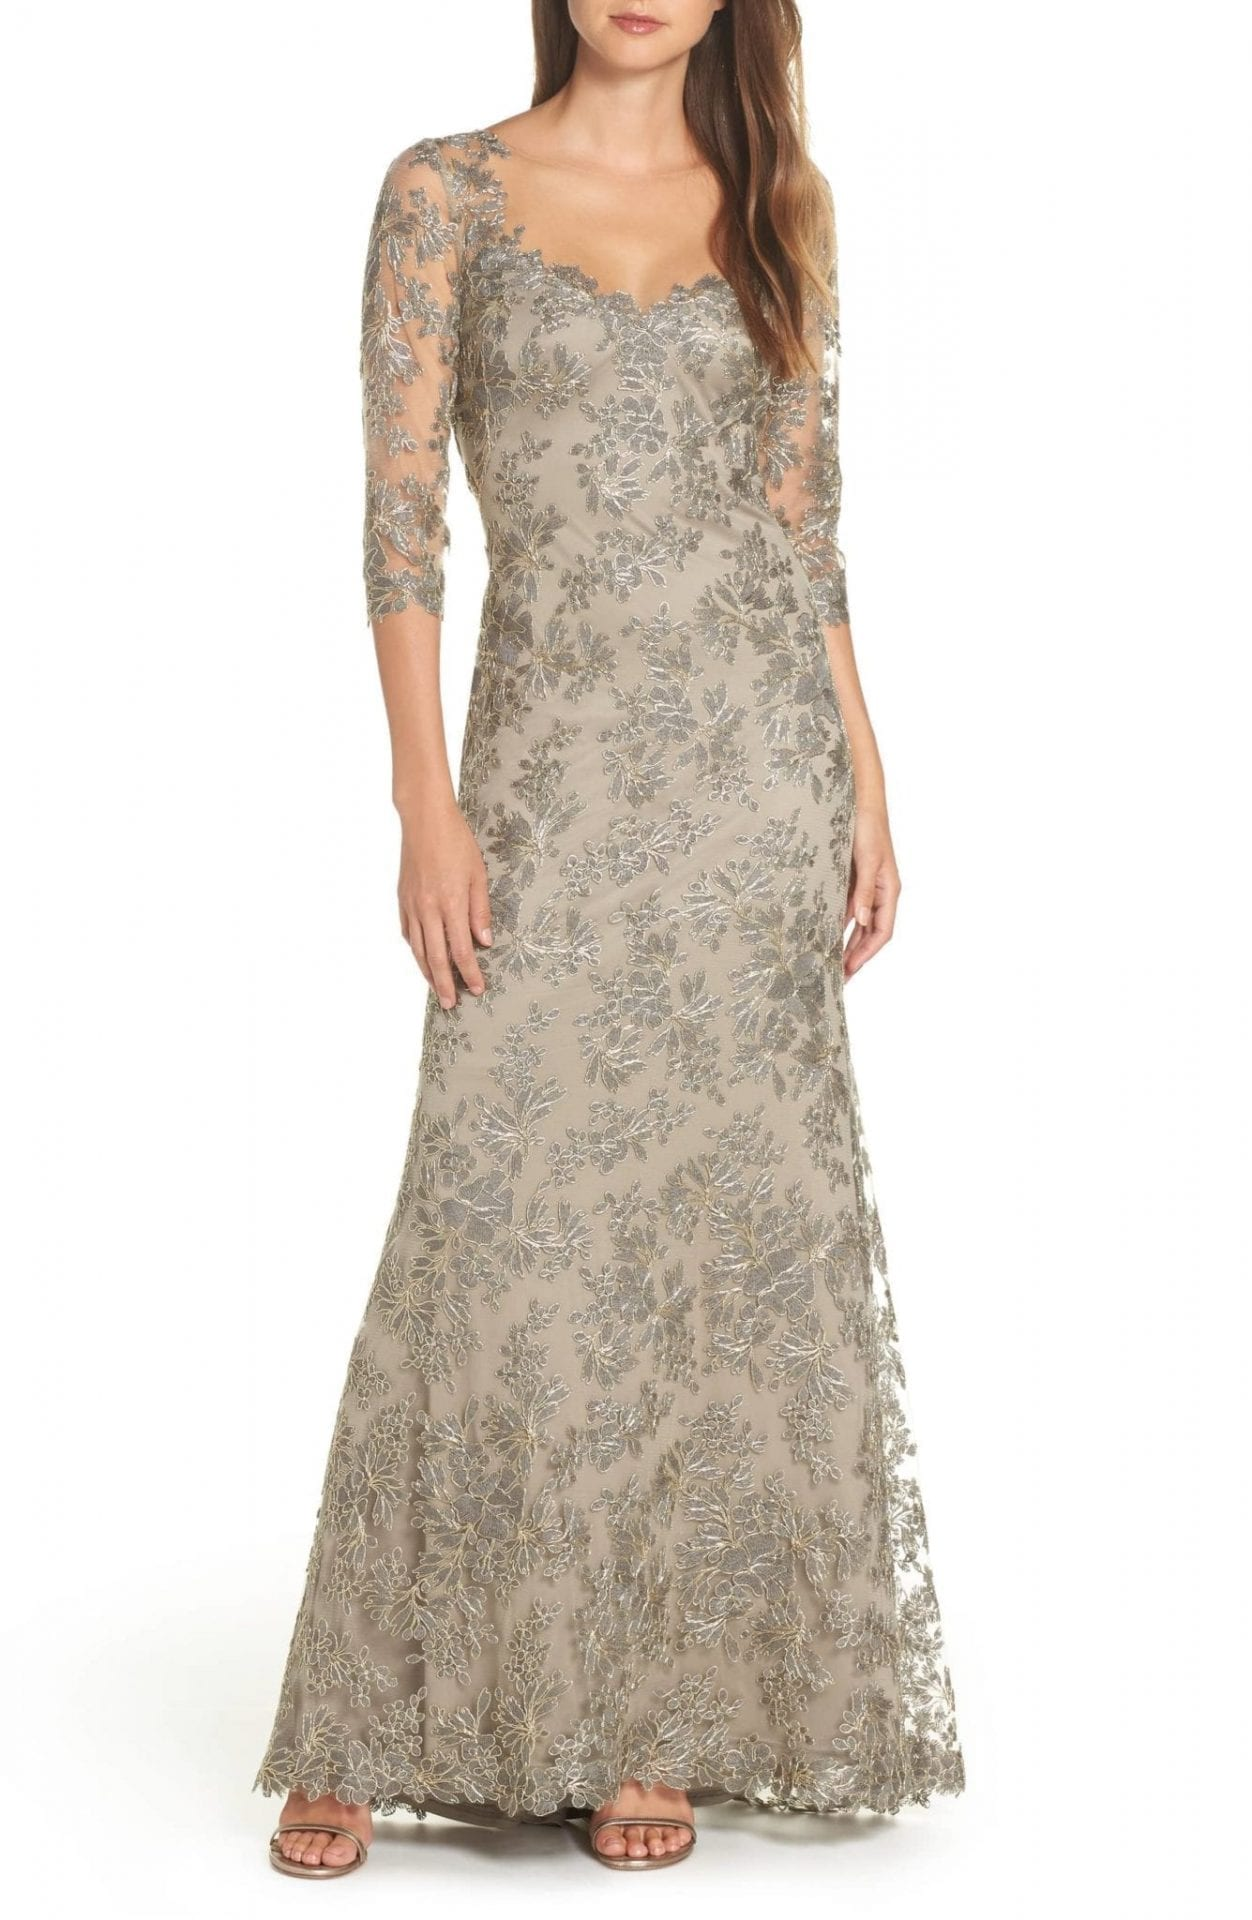 8479c4304f7 TADASHI SHOJI Corded Embroidered Lace Silver Gown - We Select Dresses